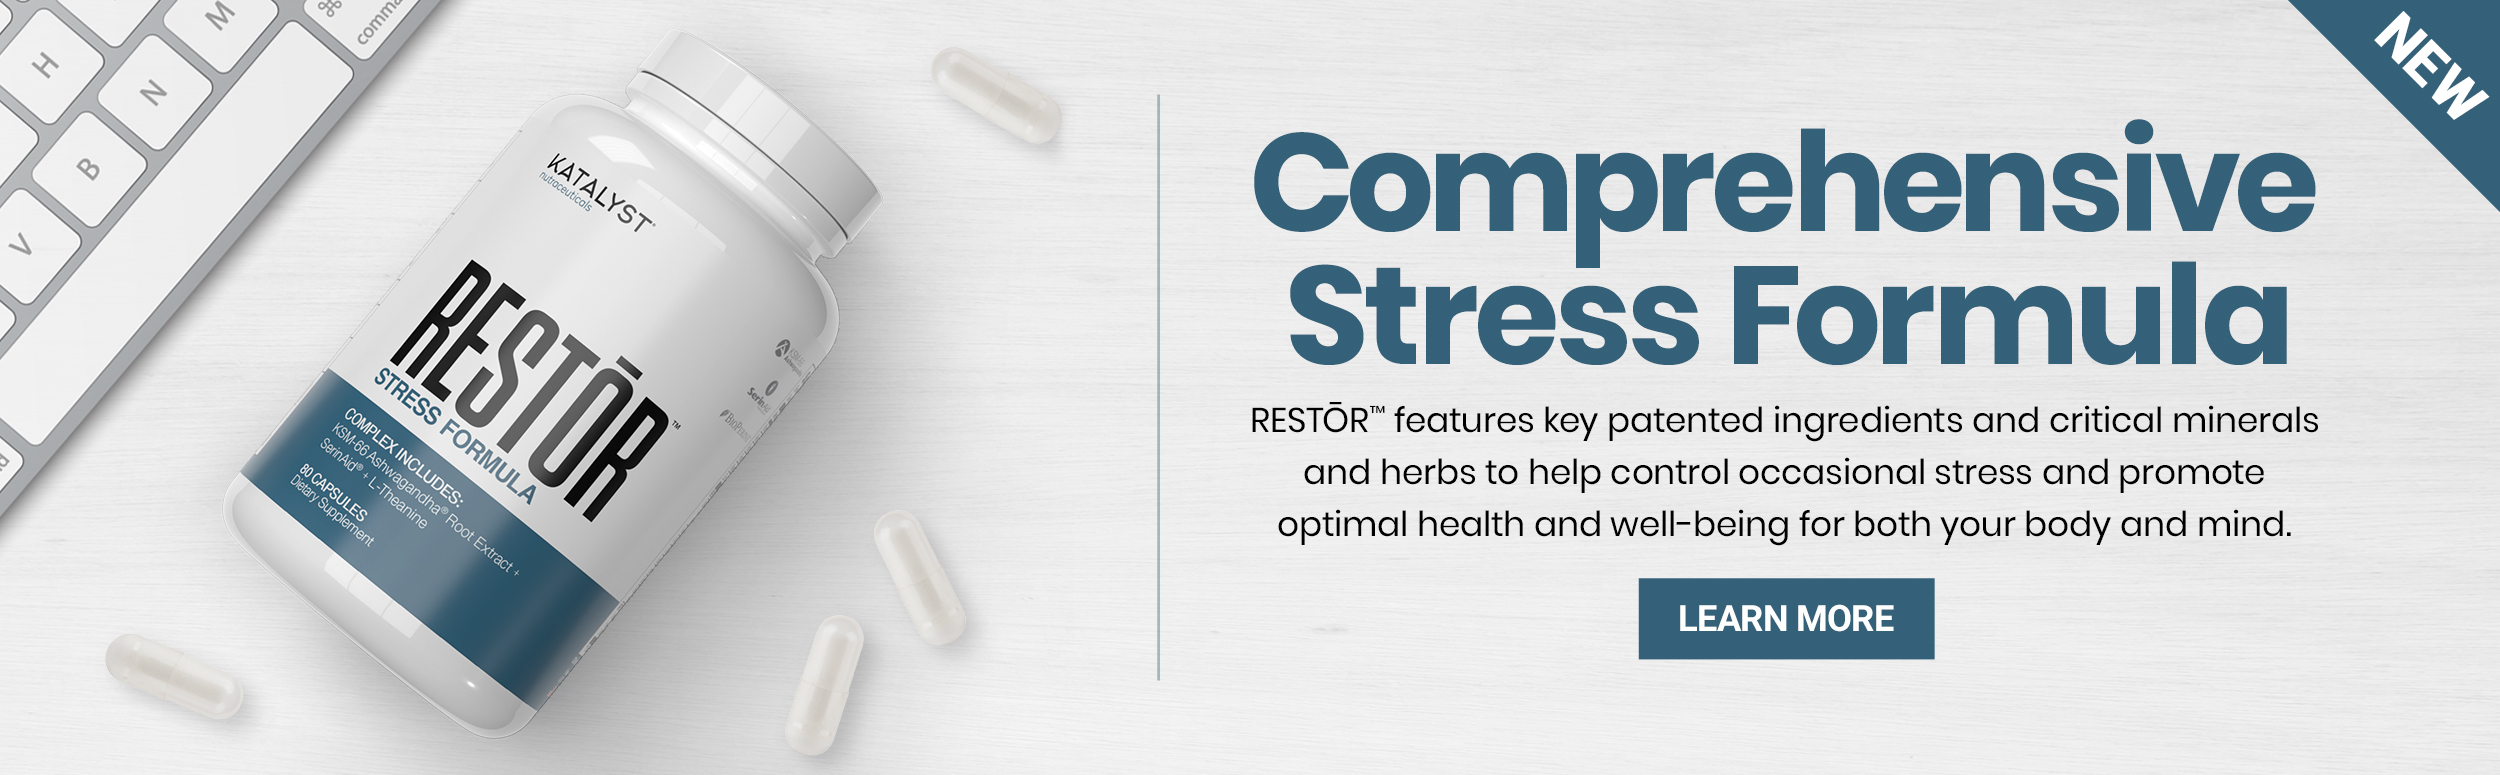 Katalyst - Restor - Comprehensive Stress Formula - Click to Learn More